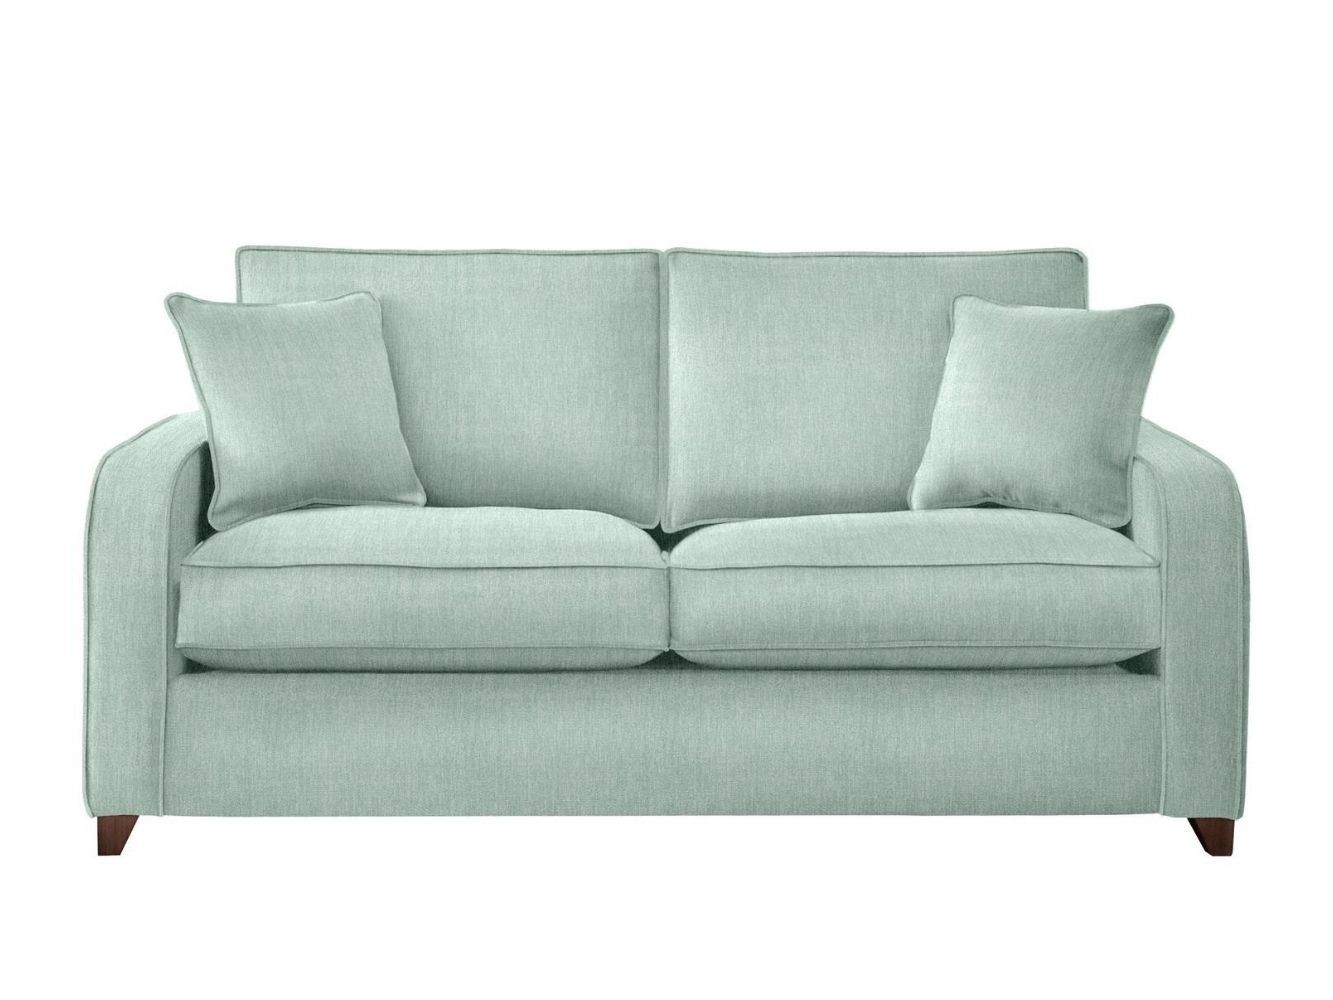 This is how I look in Stain Resistant Broad Weave Linen Aqua with feather-wrapped foam seat cushions